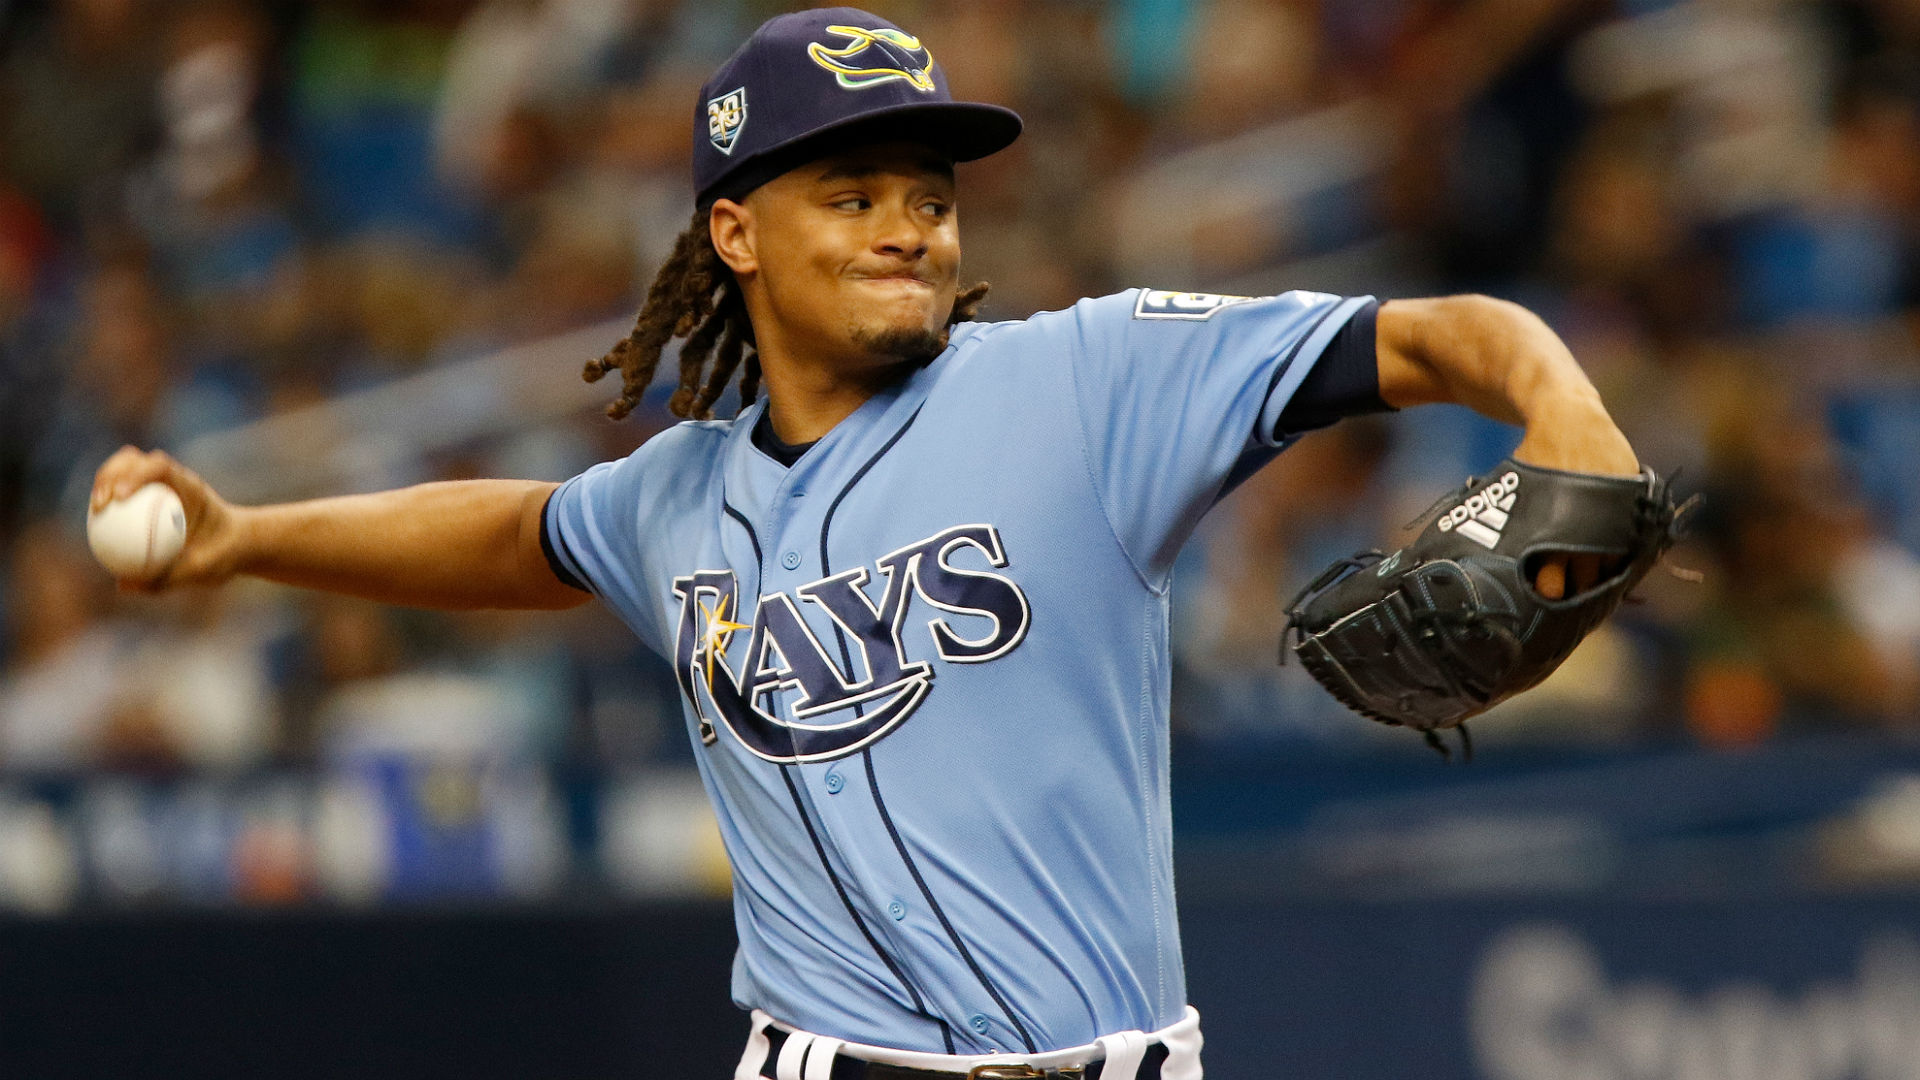 MLB trade rumors: Yankees have inquired about Rays starter Chris Archer